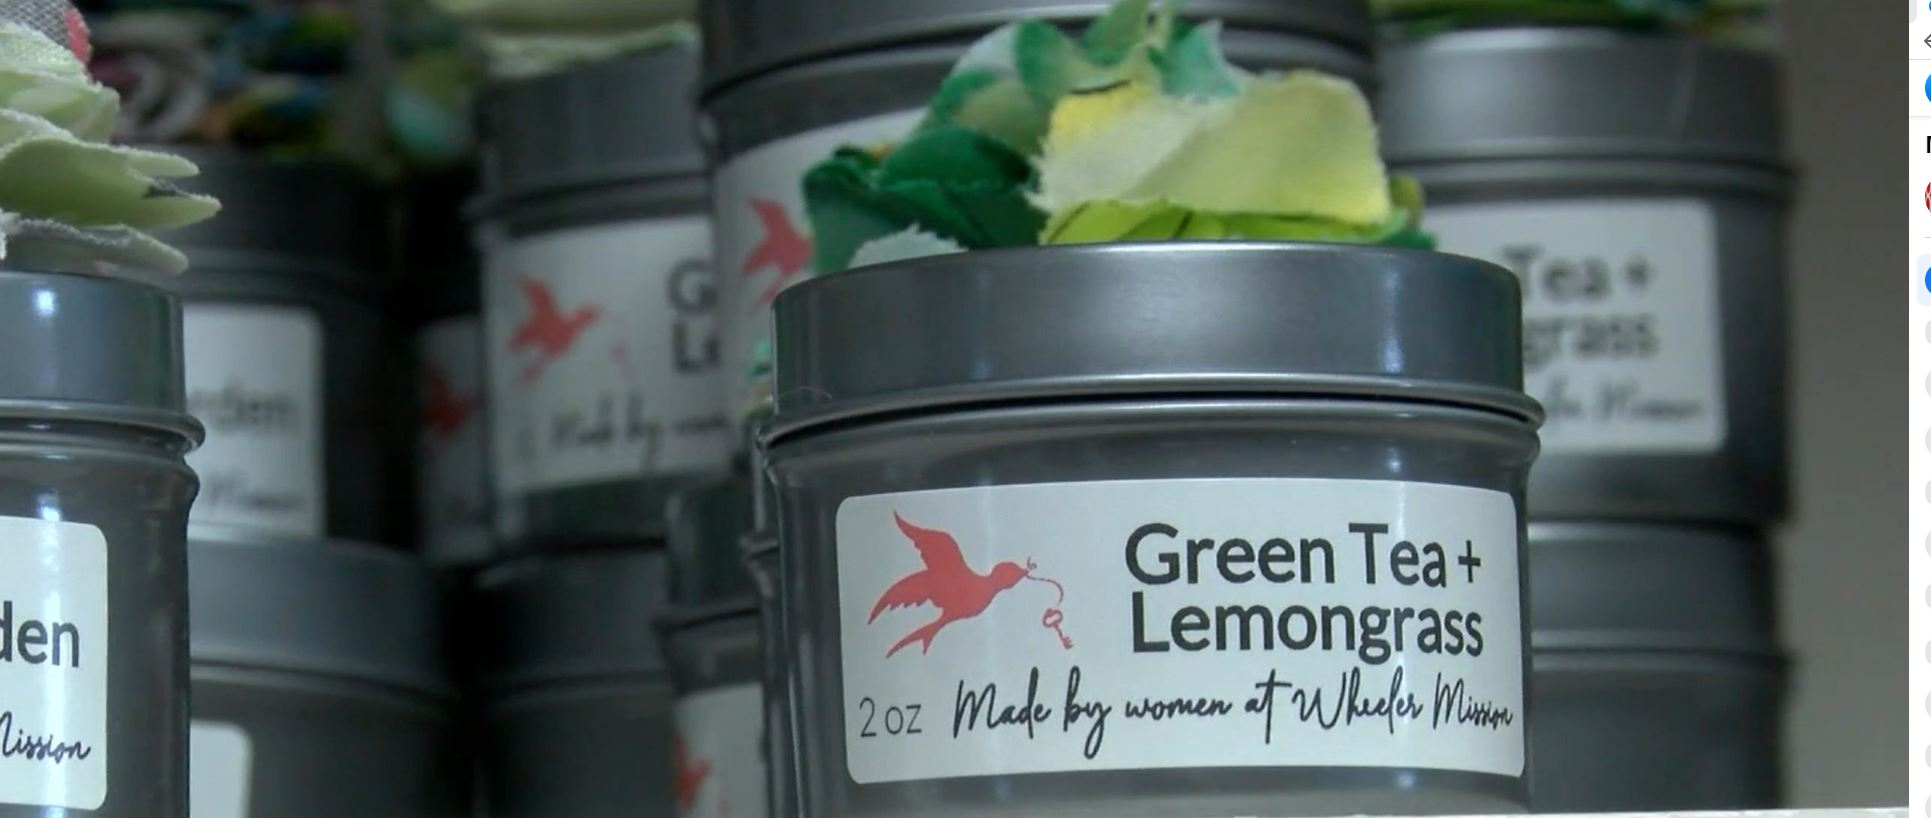 Making candles gives women dealing with addiction, domestic violence hope